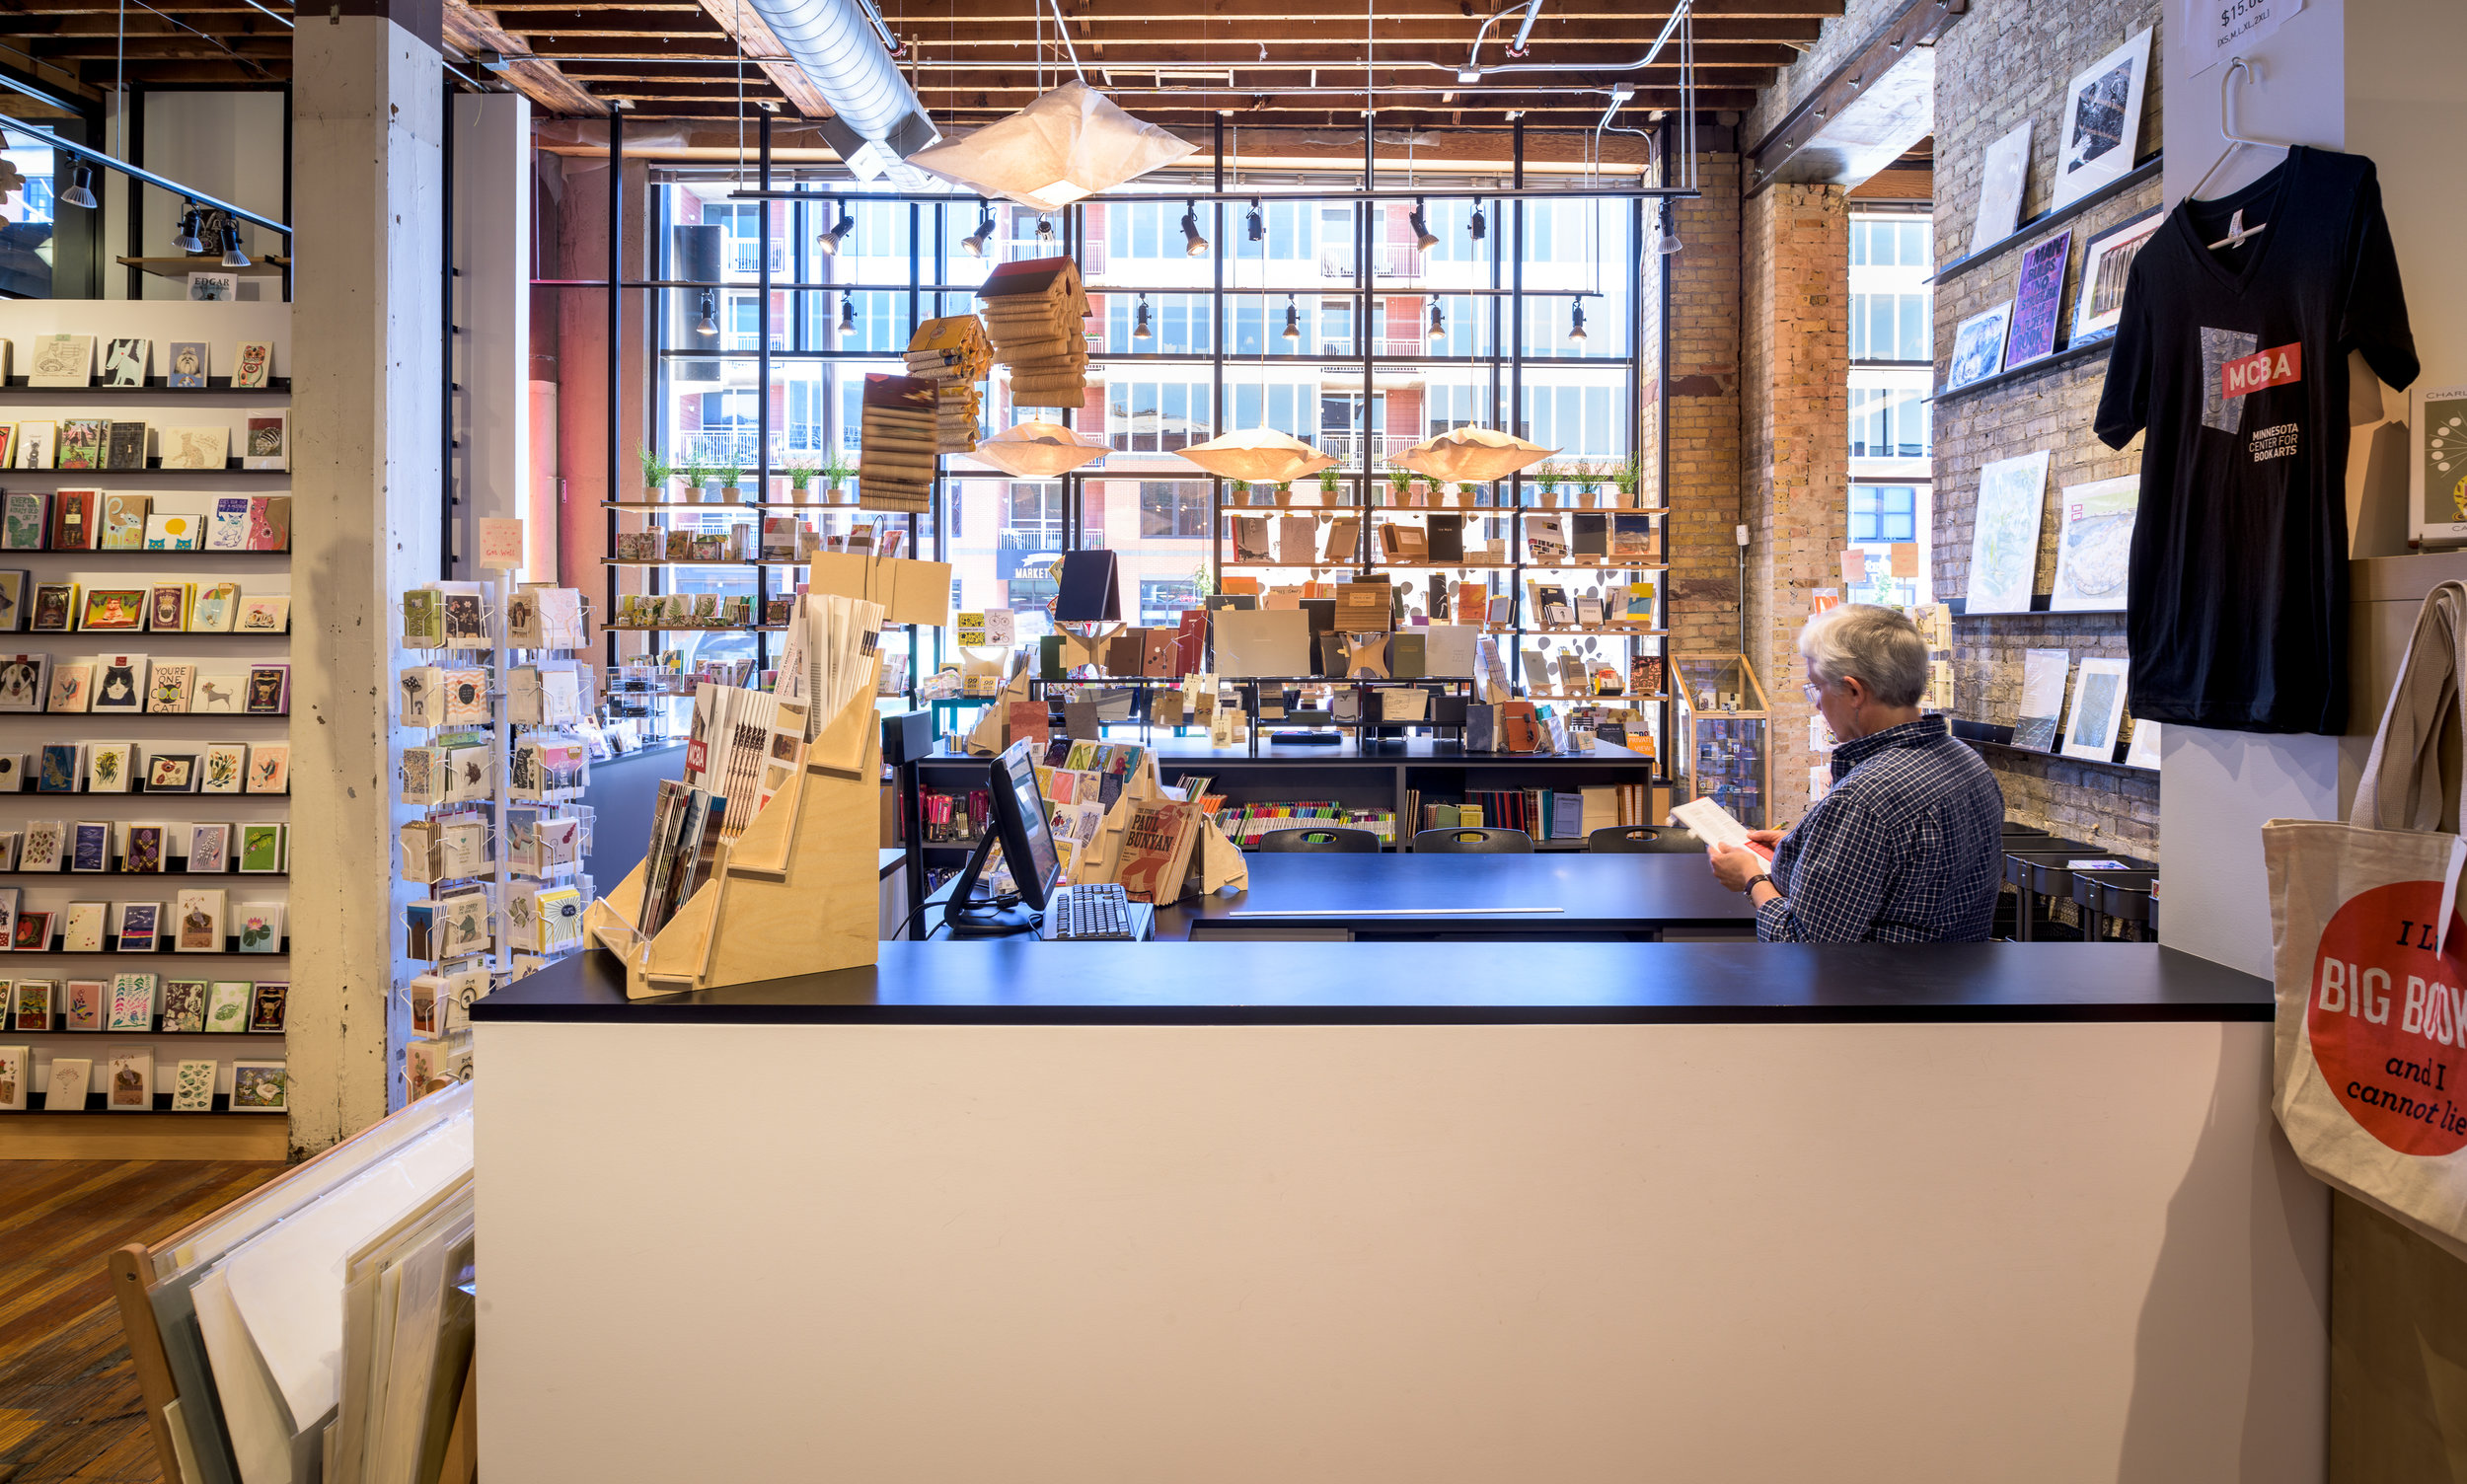 Modern gift shop in remodeled historic building in downtown Minneapolis by Christian Dean Architecture.